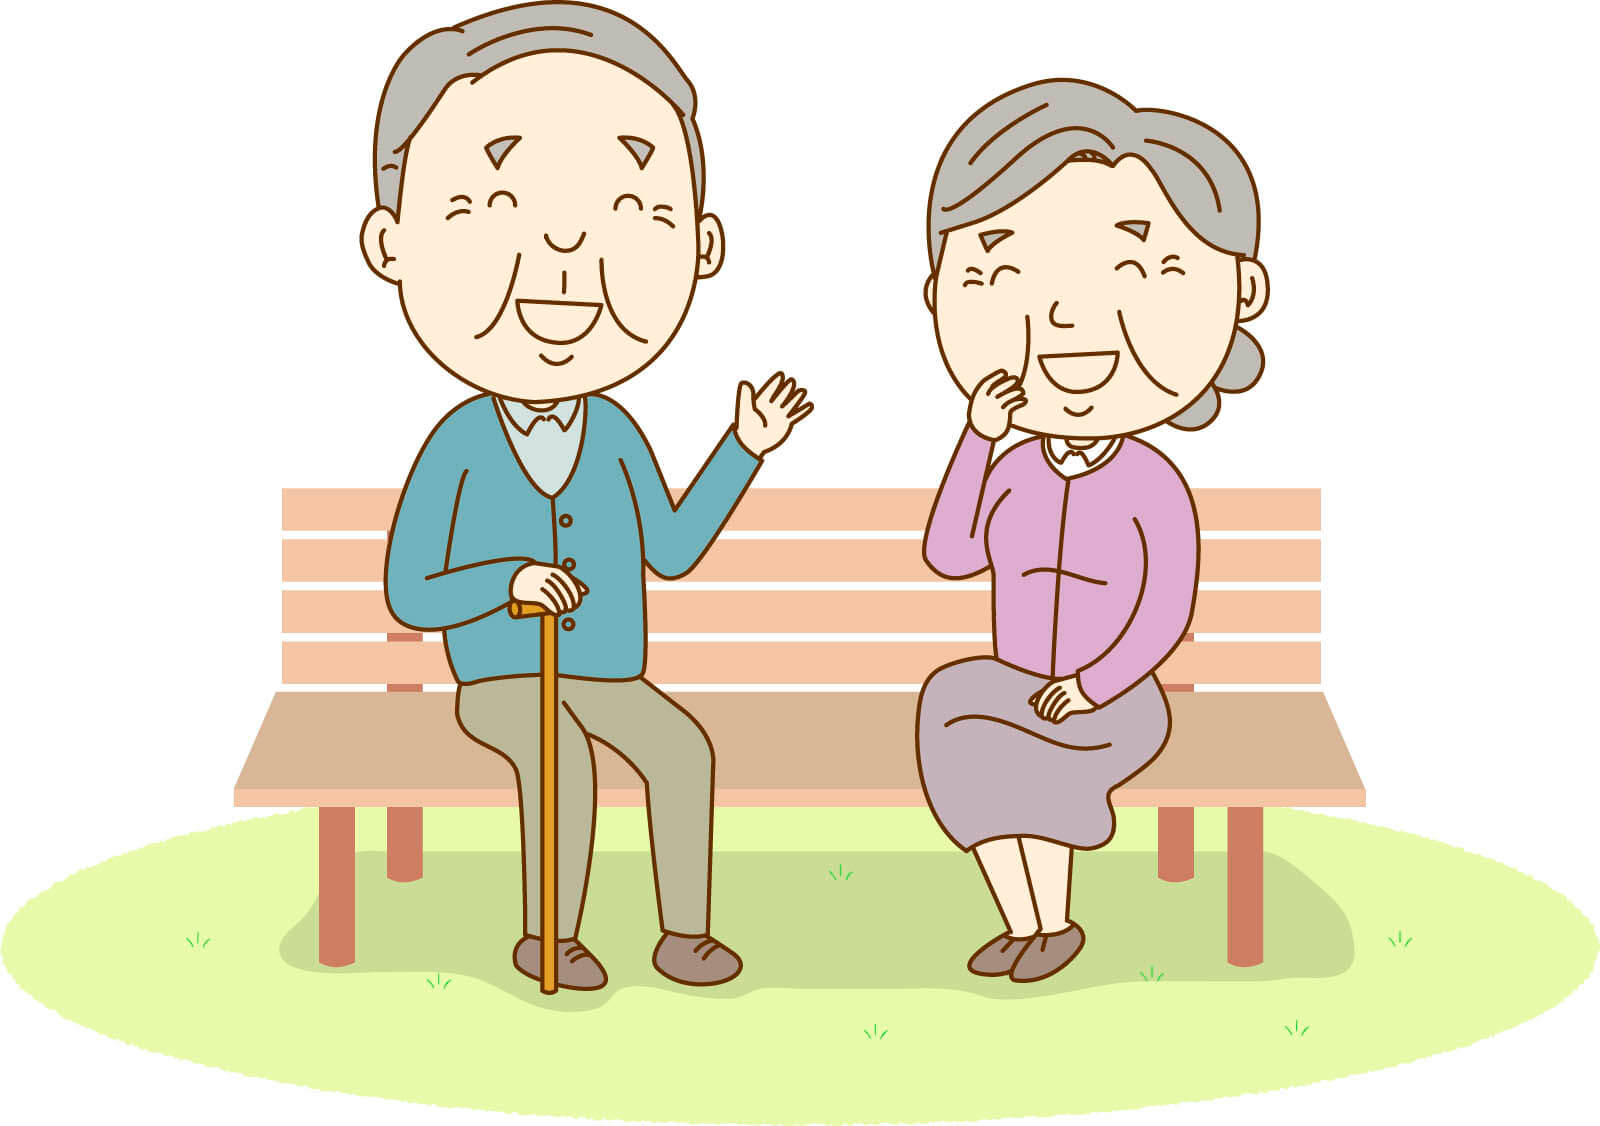 Image of conversation between an old man and an old lady